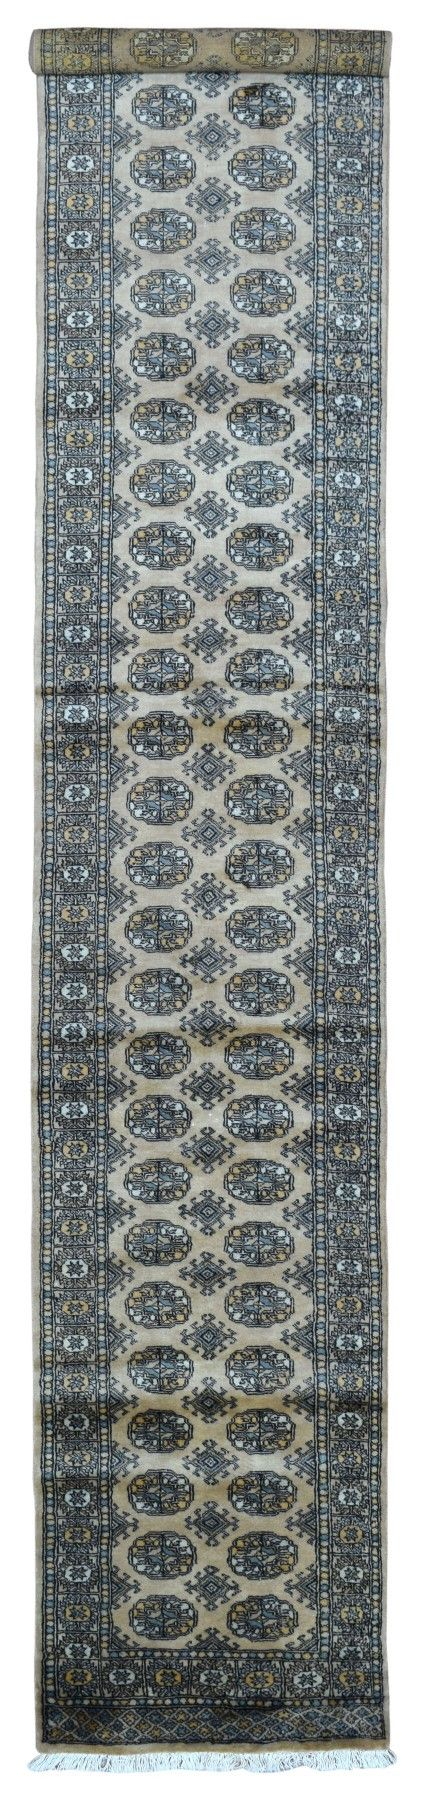 Royal Bukhara Oriental Long Runner Rug 2'7X15'